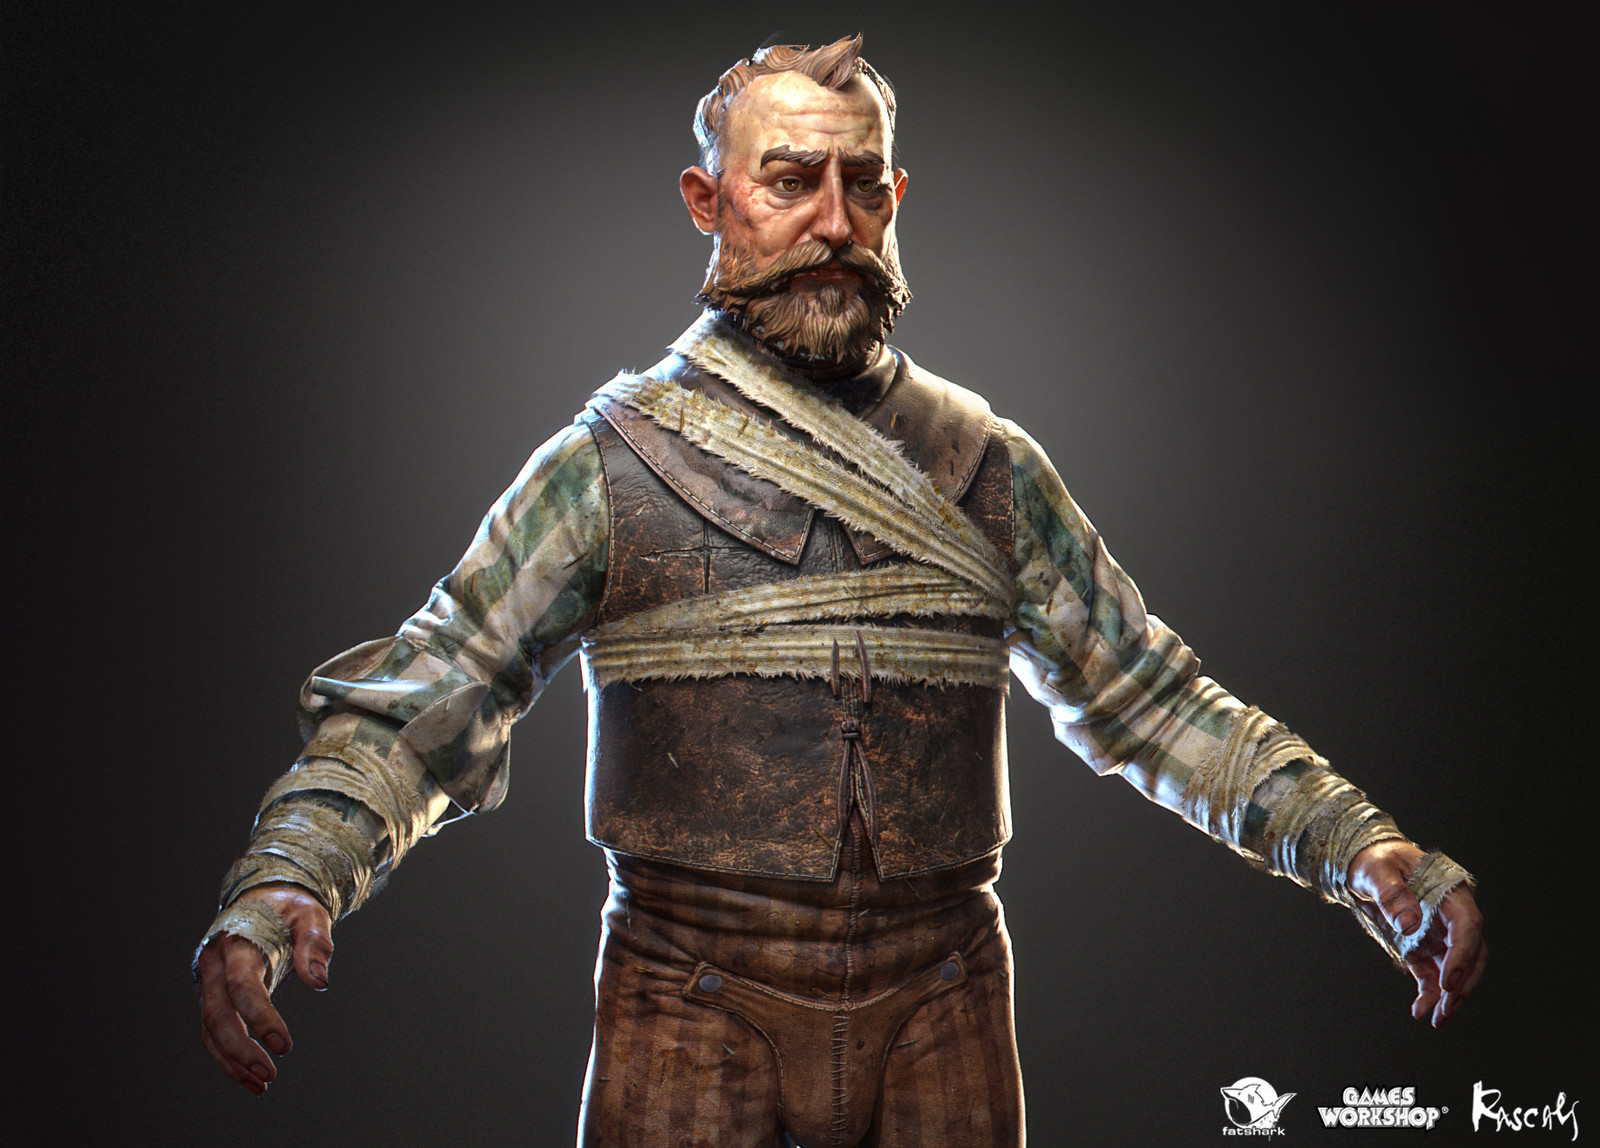 As if the hardships of imprisonment by Chaos were not enough, this feller never got his name throughout making of Warhammer Vermintide II.